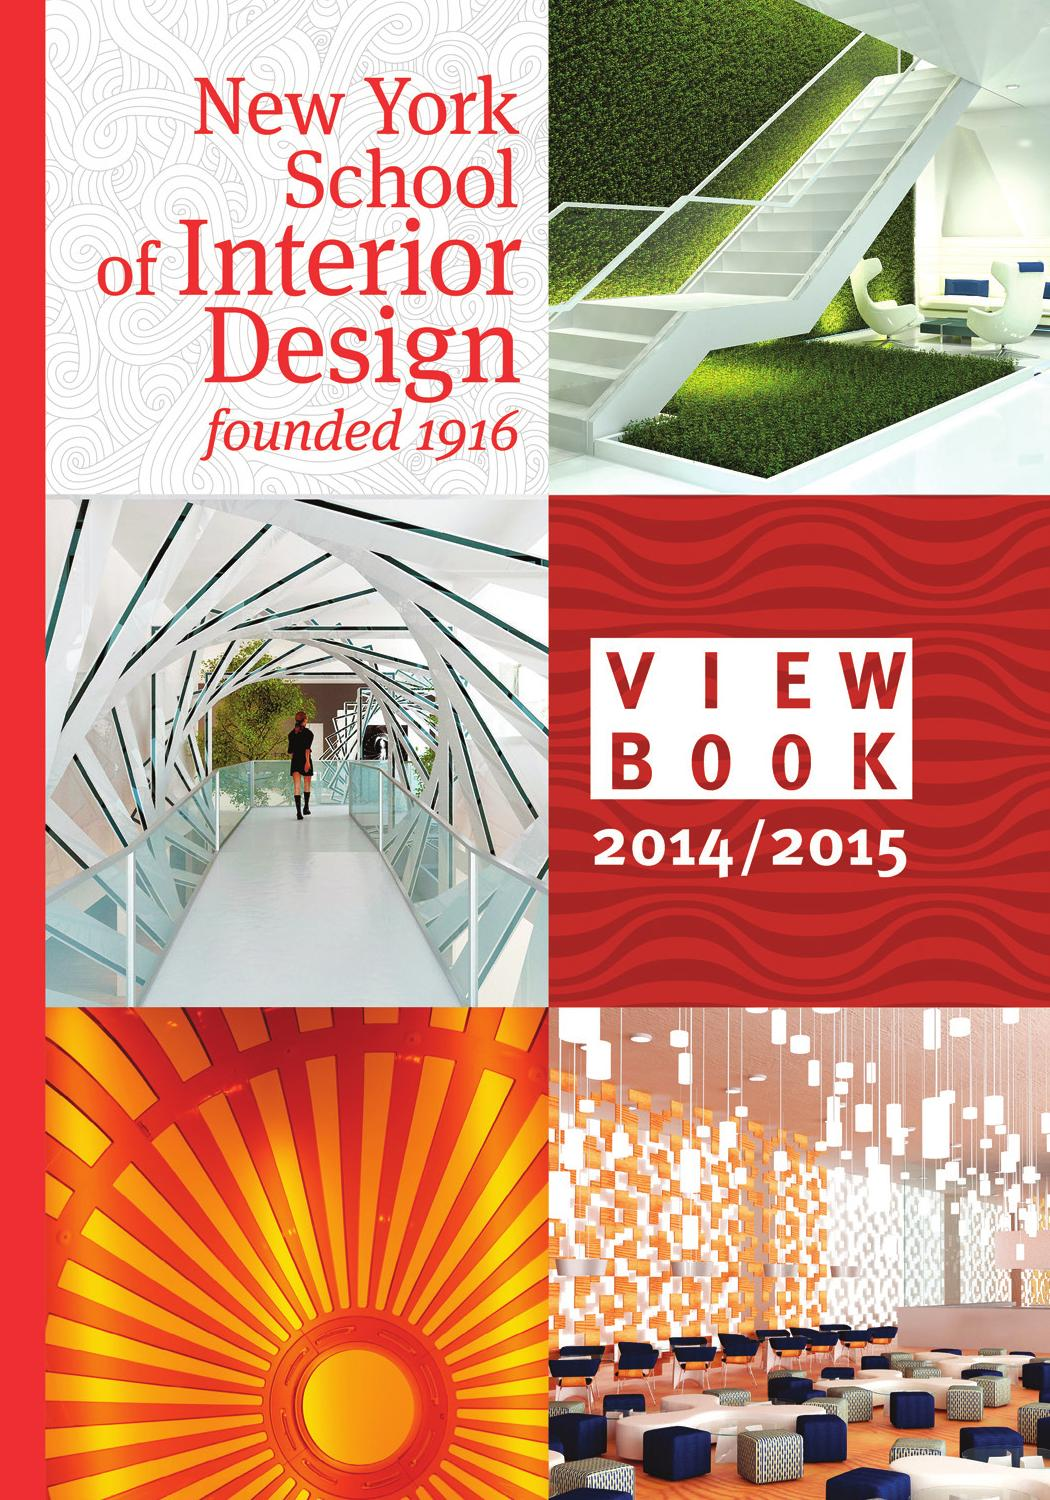 Nysid Viewbook 2014 2015 By New York School Of Interior Design Issuu